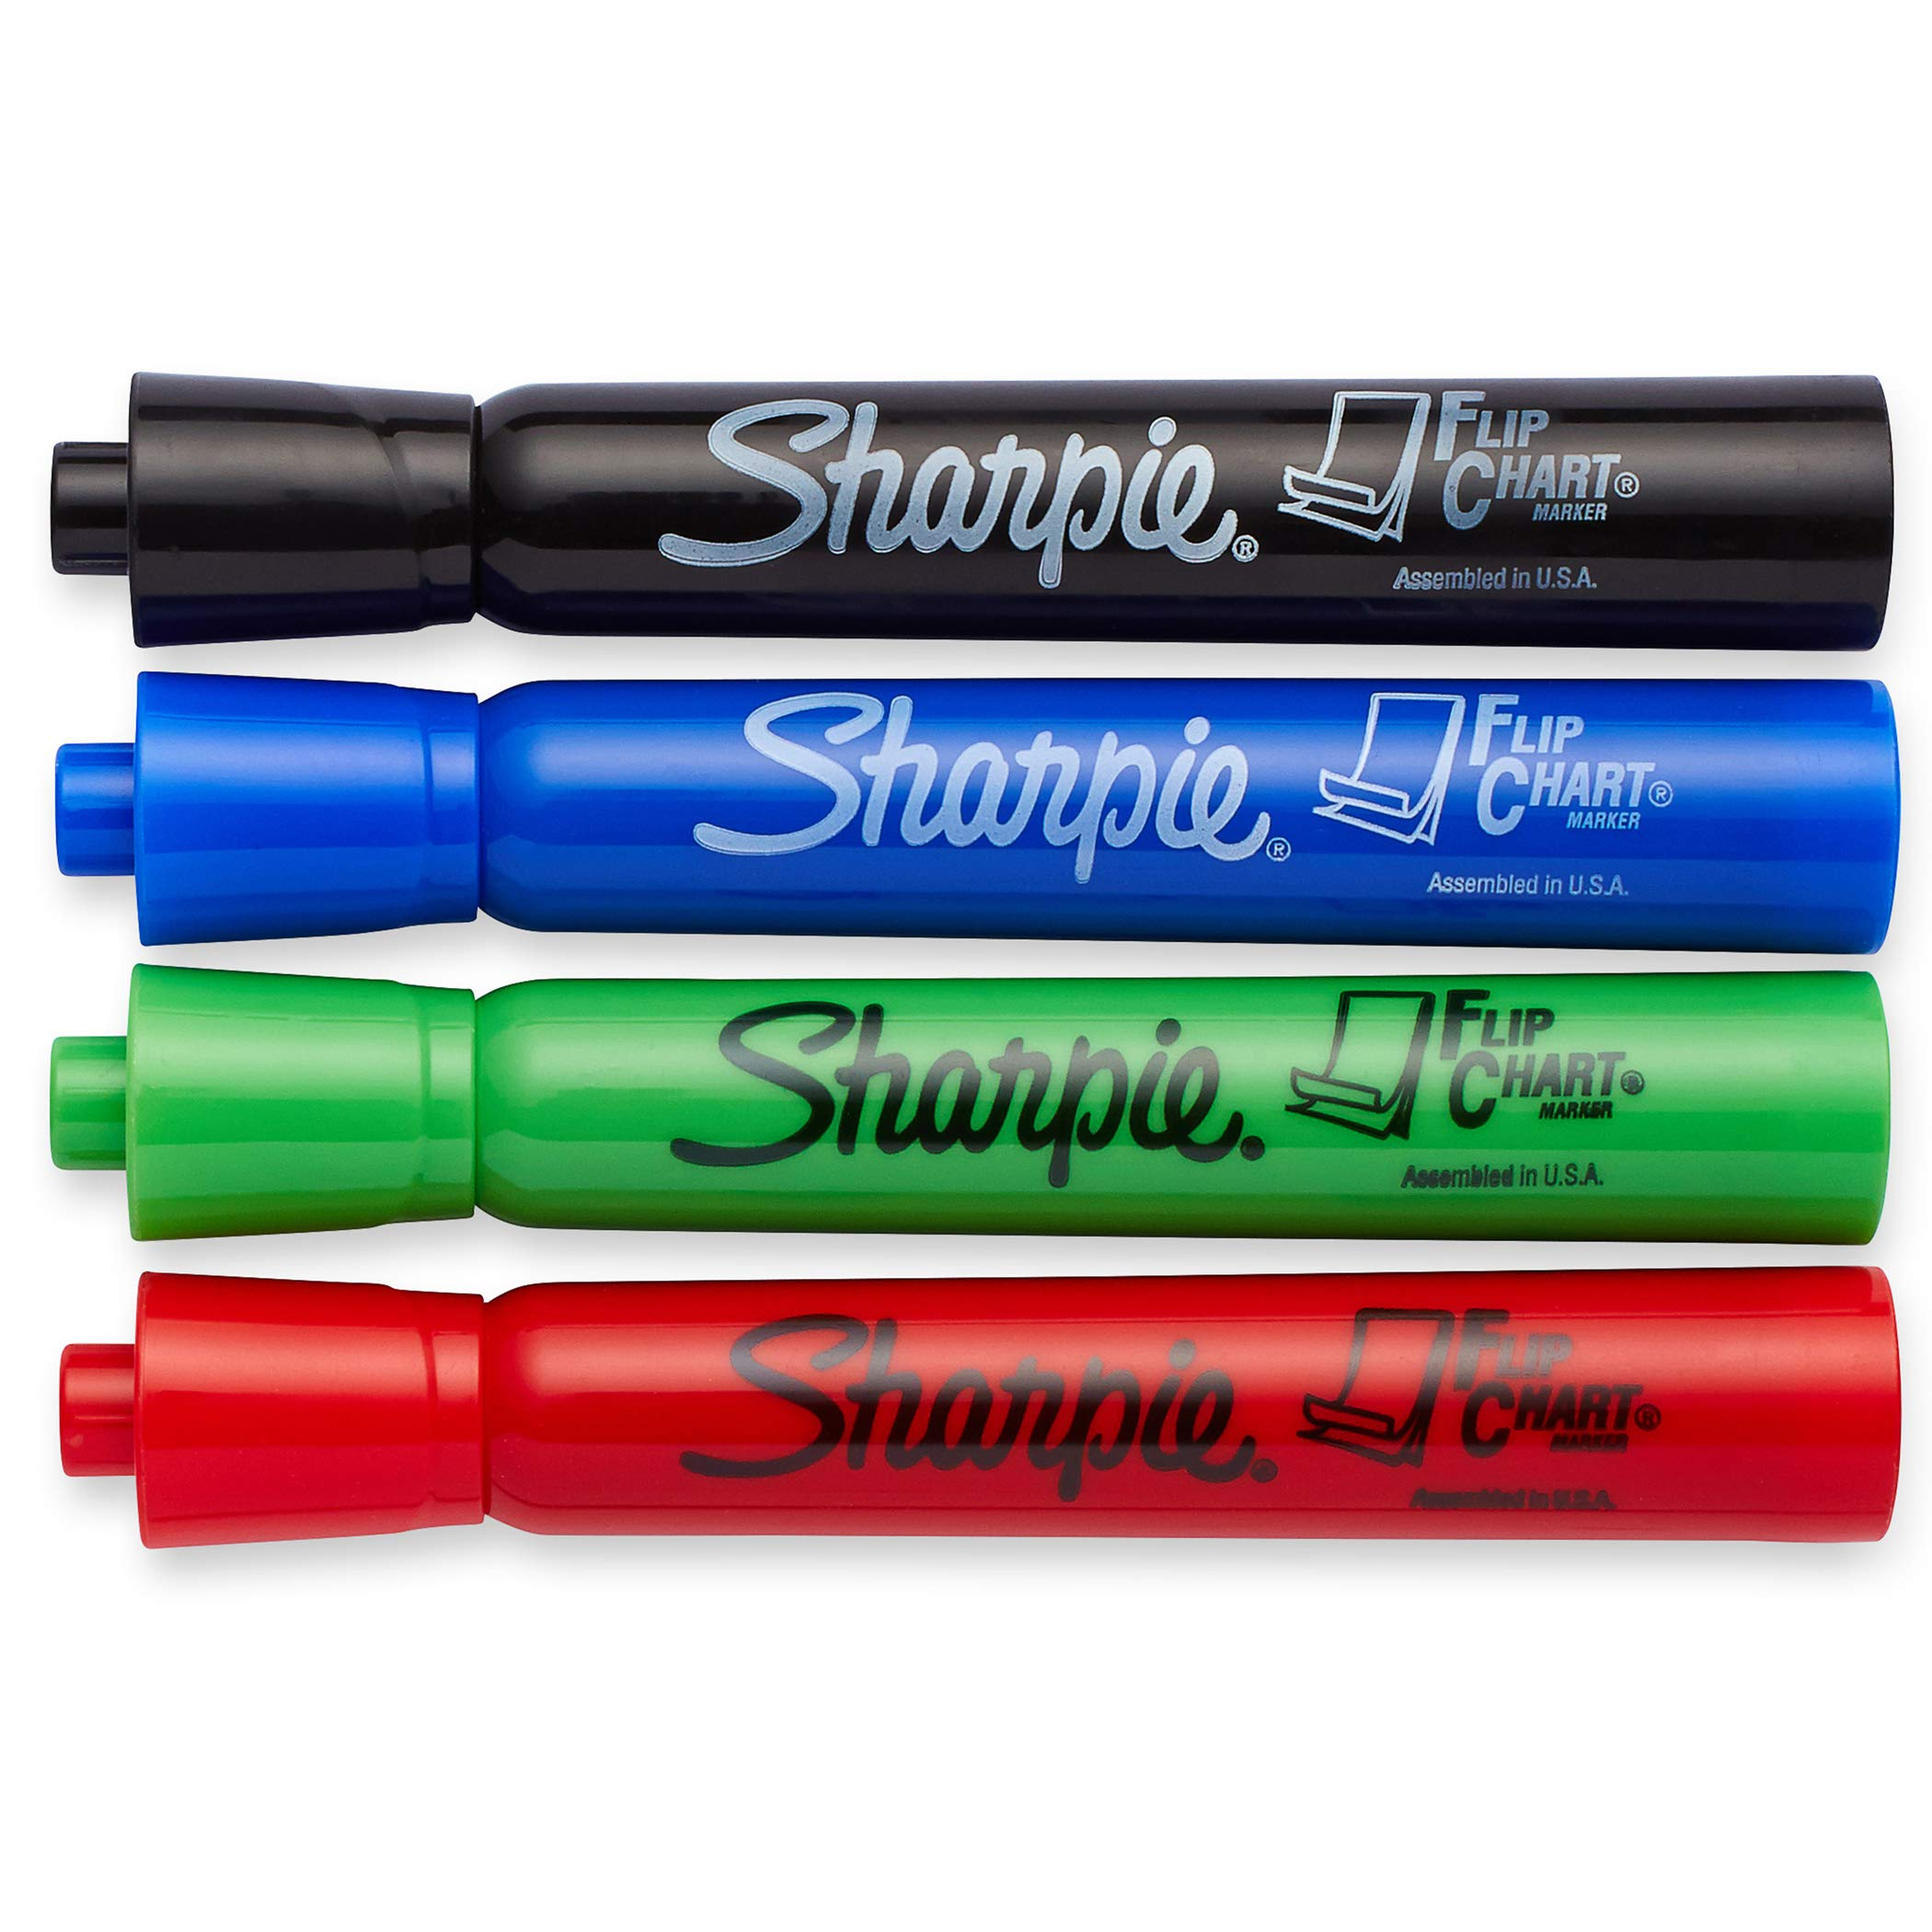 Sharpie SAN22474BN Flip Chart Markers, 4 Per Pack, 6 Packs, Black/Blue/Green/Red